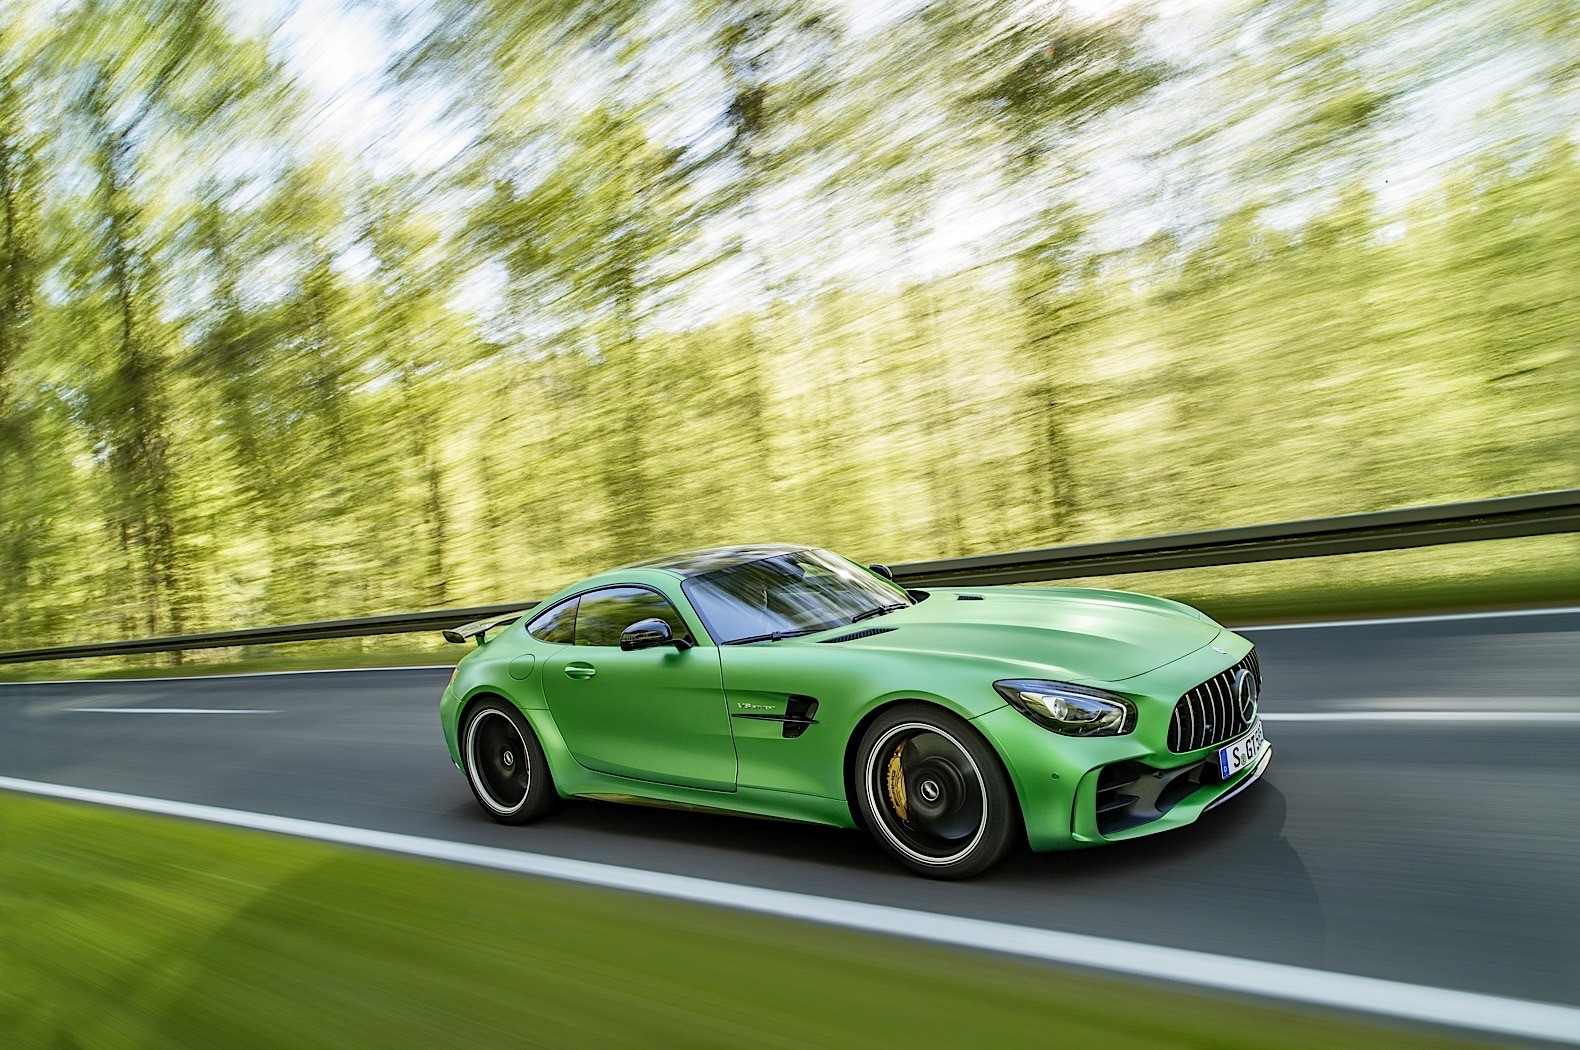 2017 Mercedes Benz R Class AMG Styling photo - 4